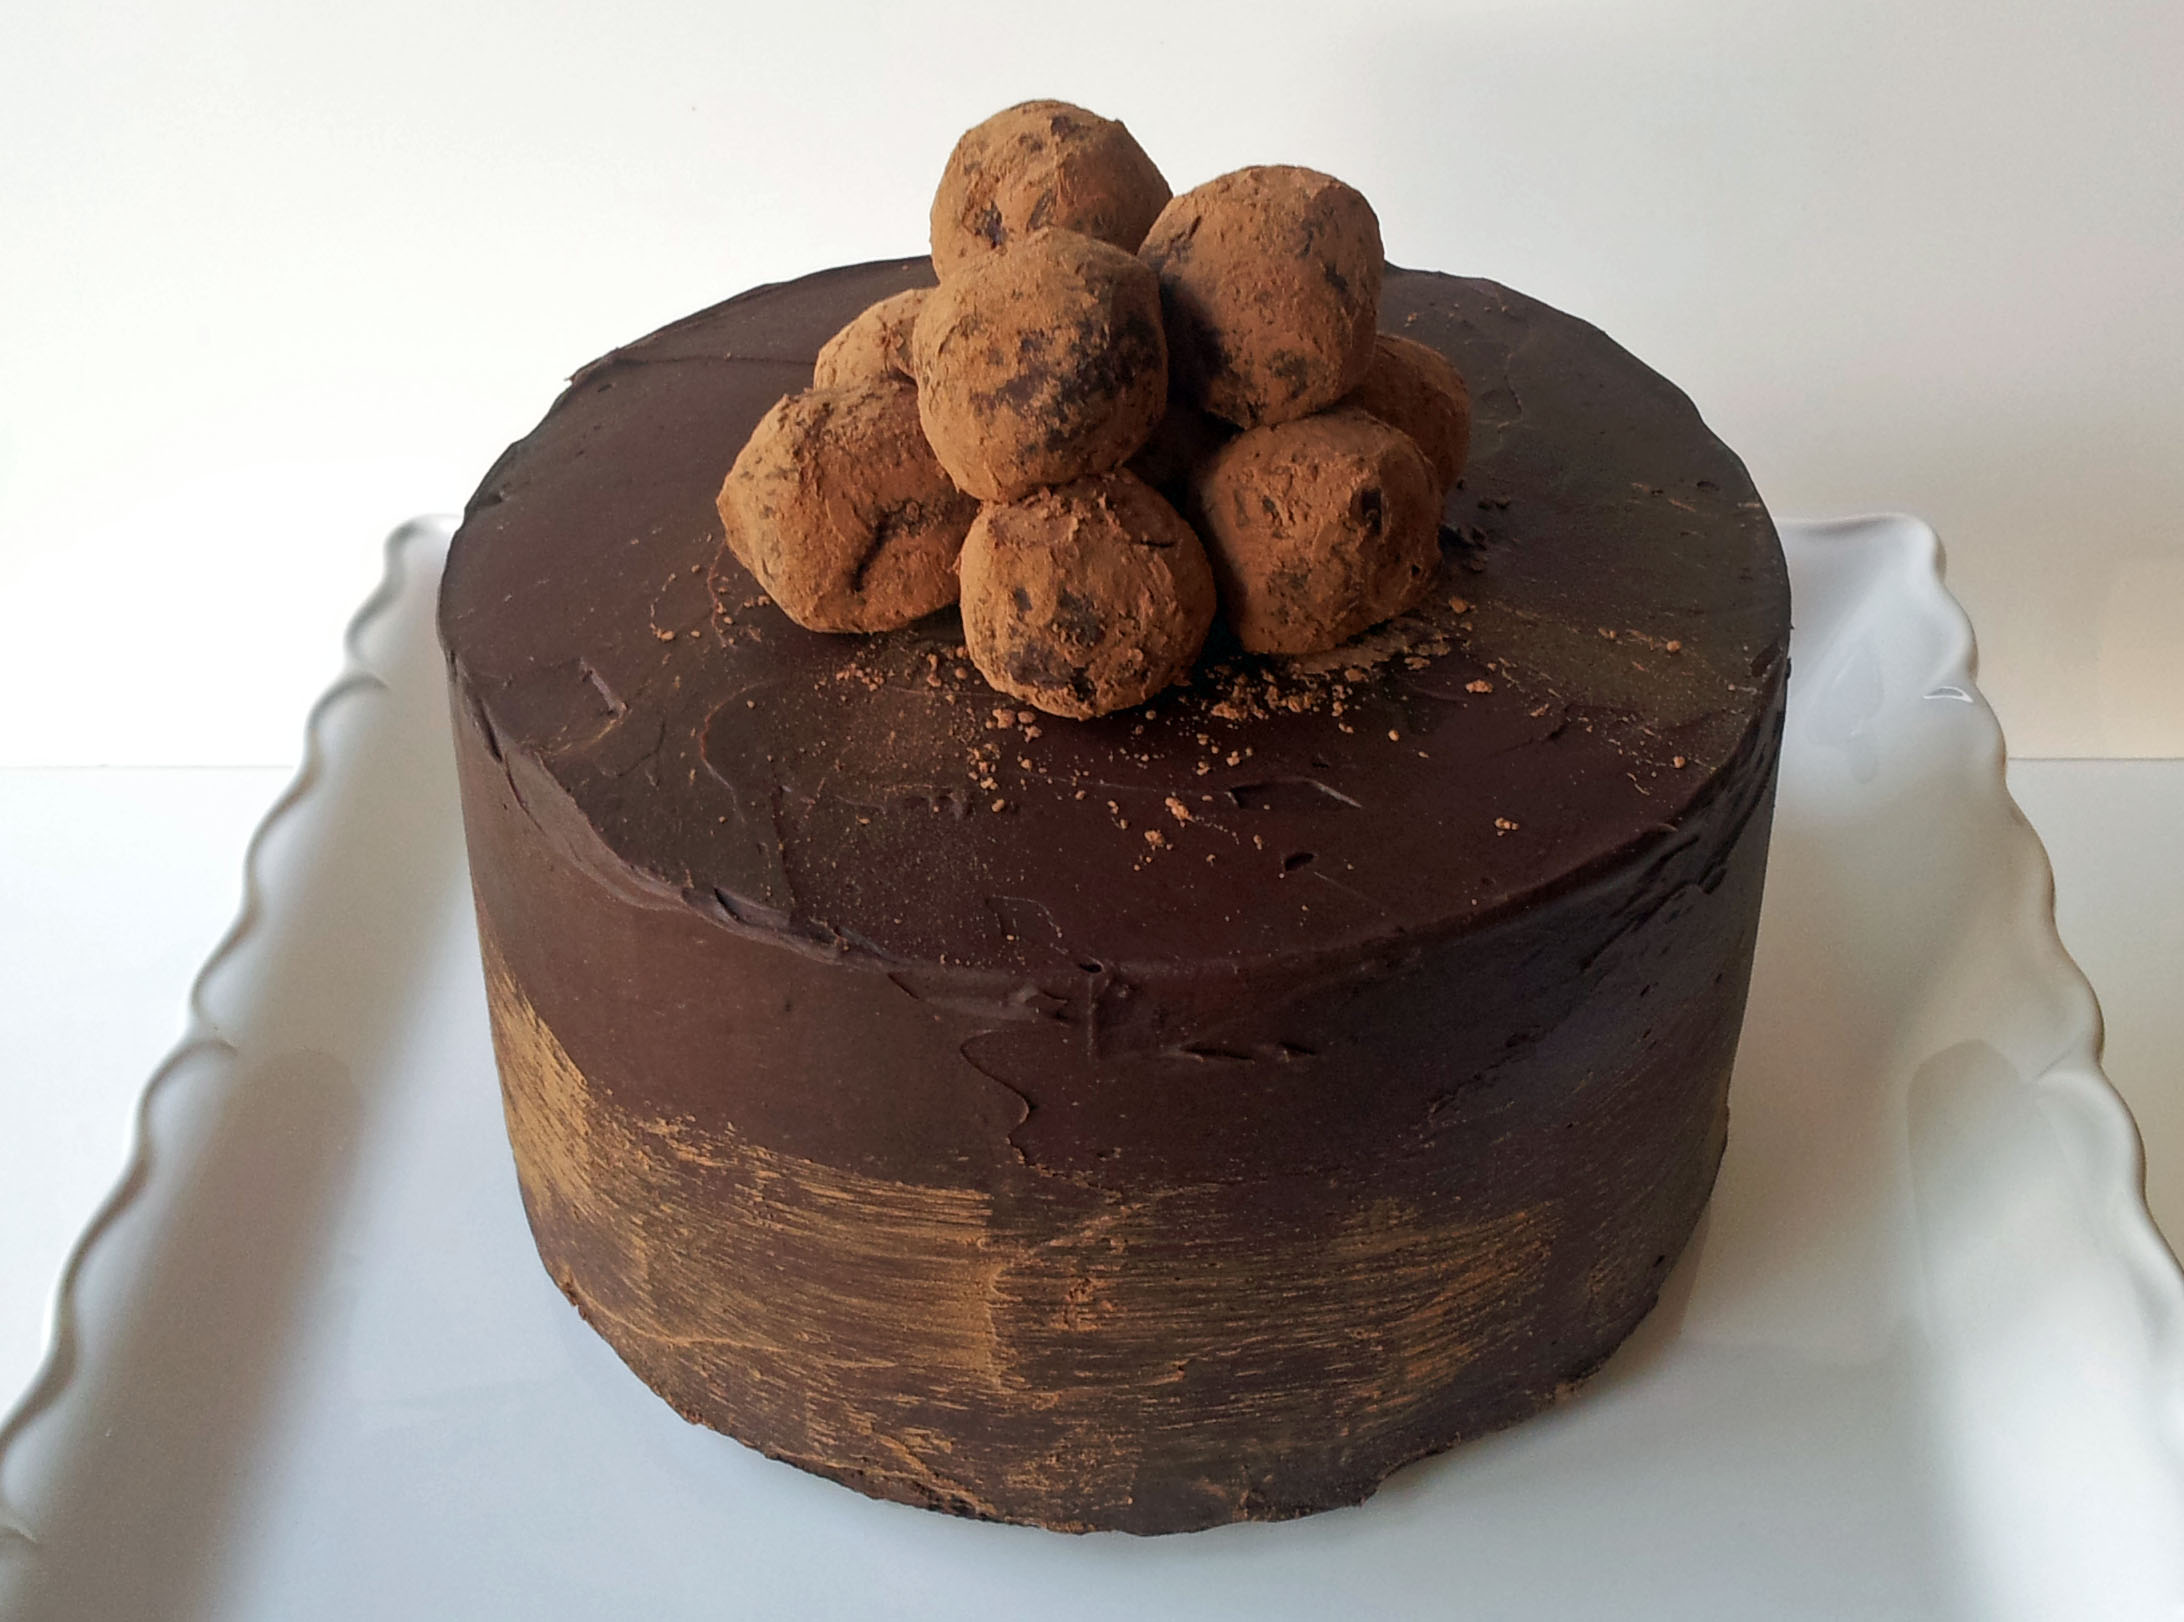 Chocolate Truffle Cake Images : Chocolate Truffle Cake Delish